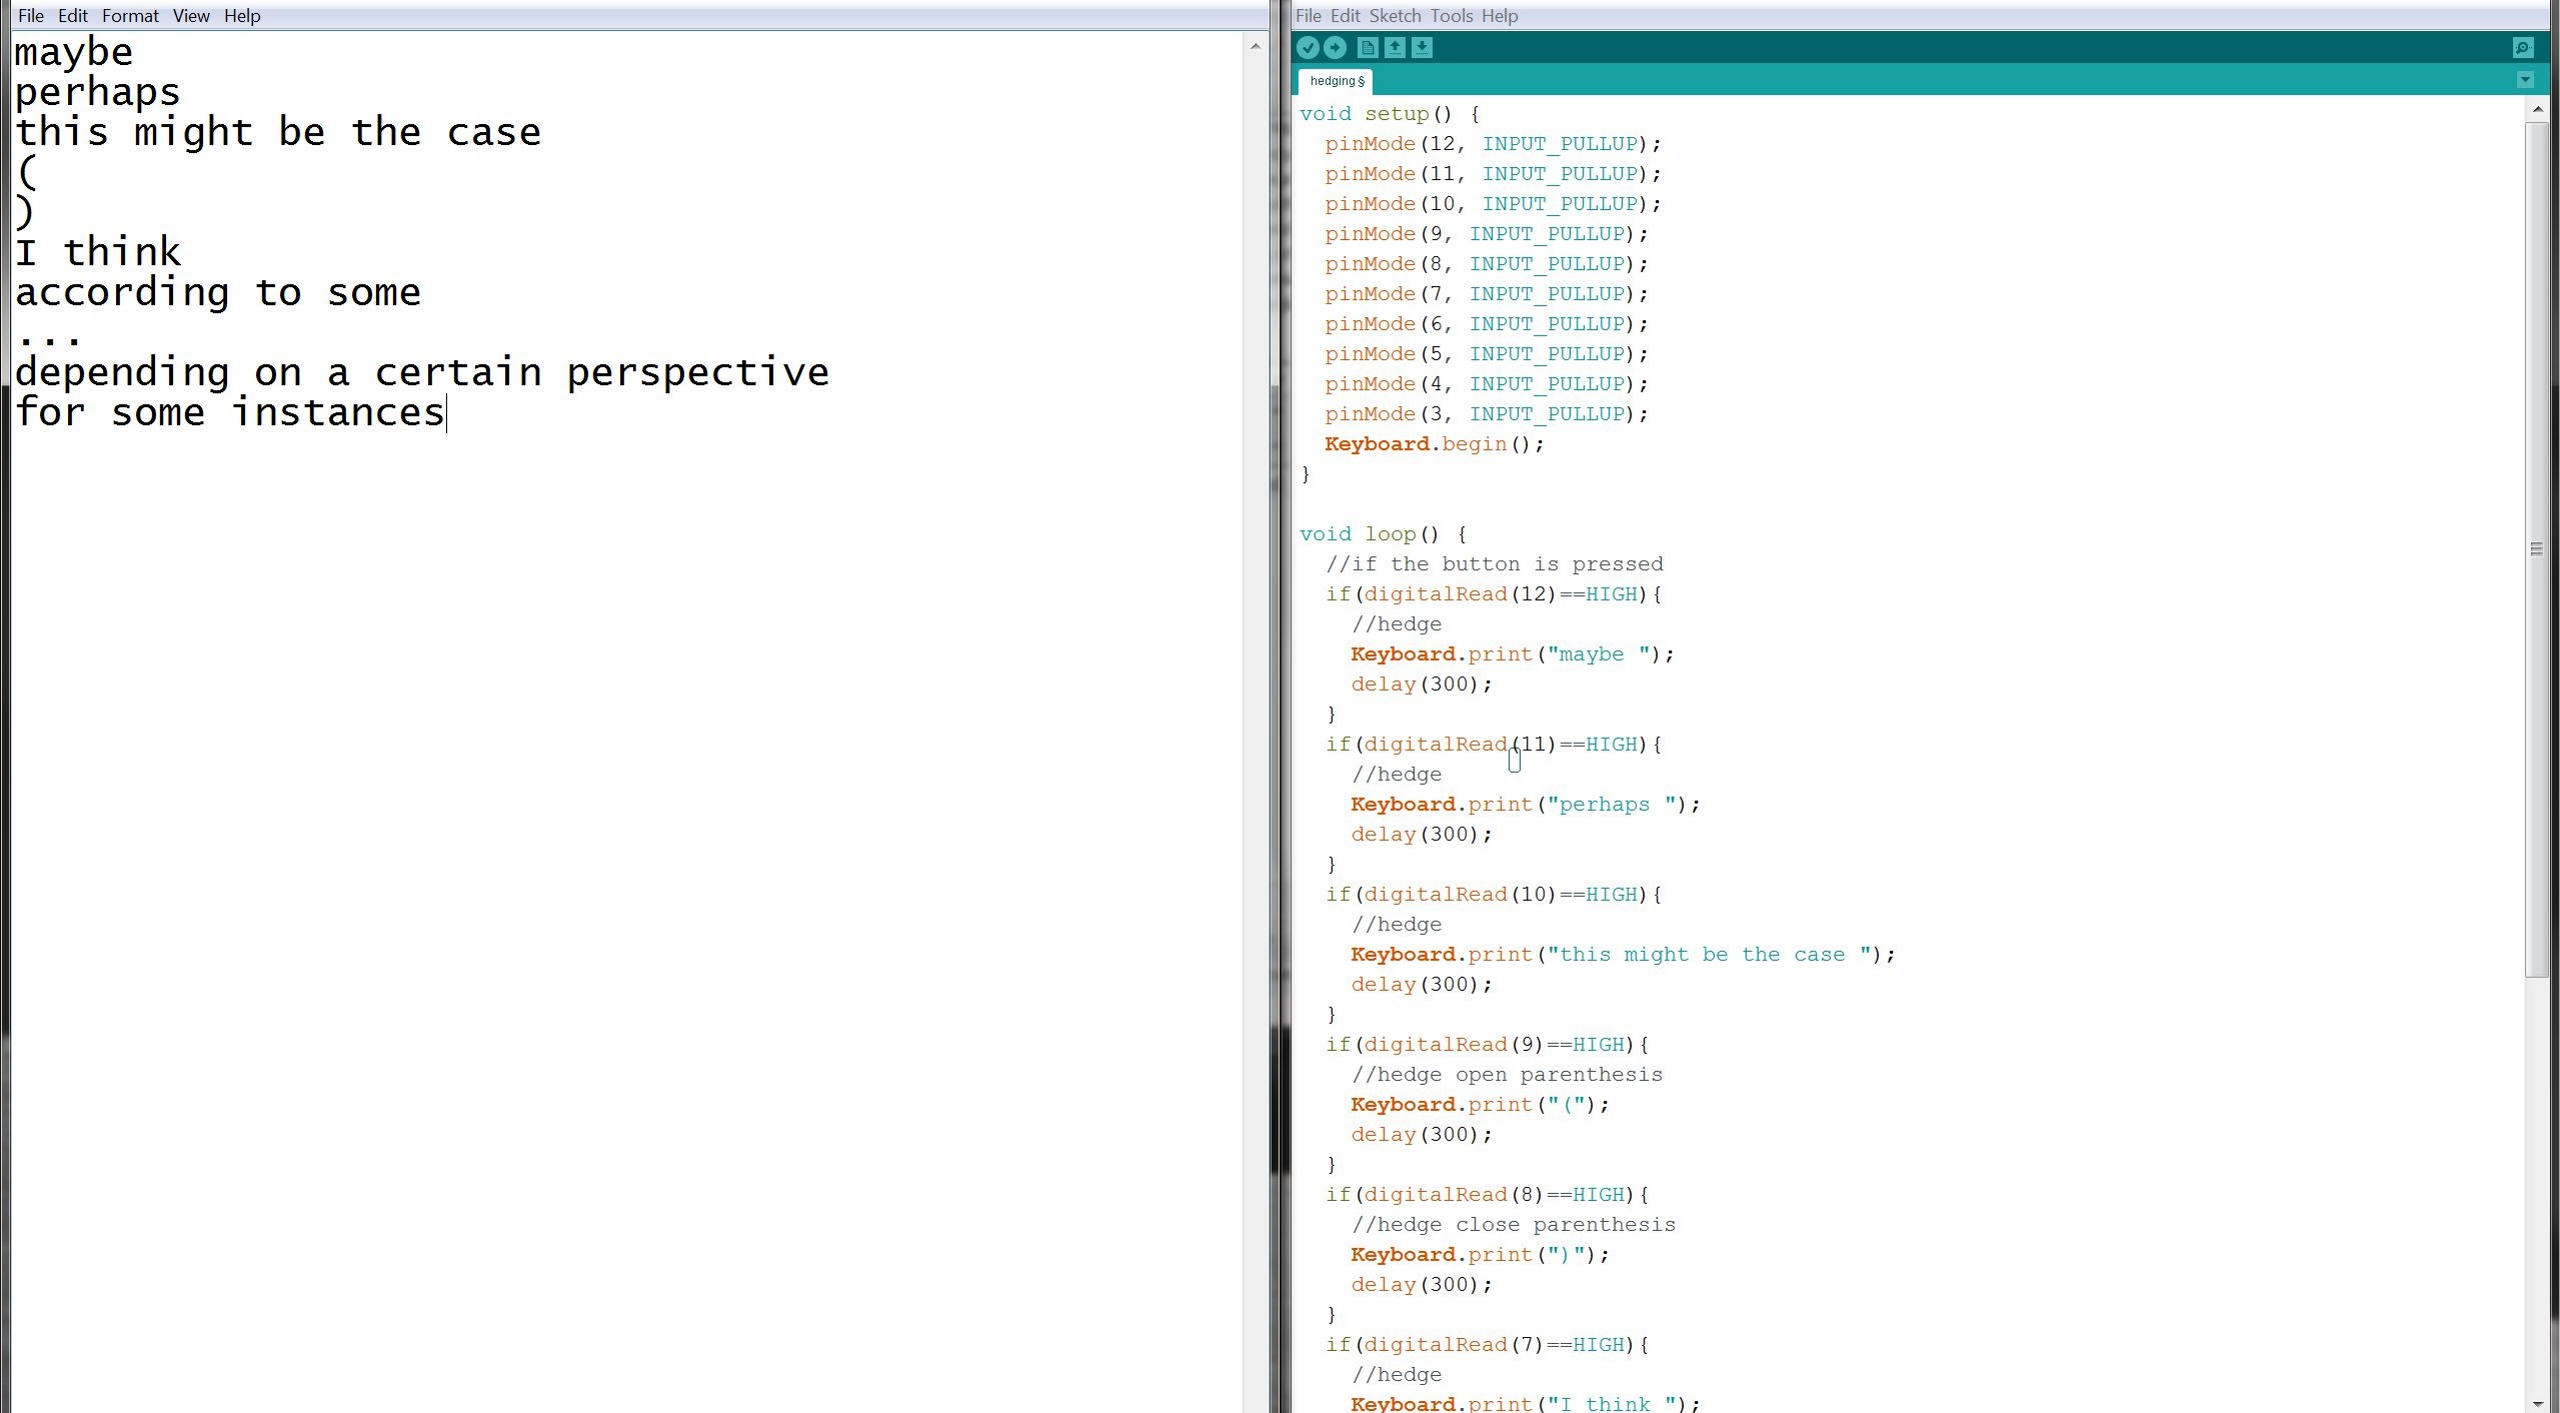 A screenshot. On the left is a simple text editor that displays the output of the hedging machine. It reads 'maybe perhaps this might be the case () I think according to some ... depending on a certain perspective for some instances'. On the right is the code for the Arduino. Picture taken by Steven LeMieux